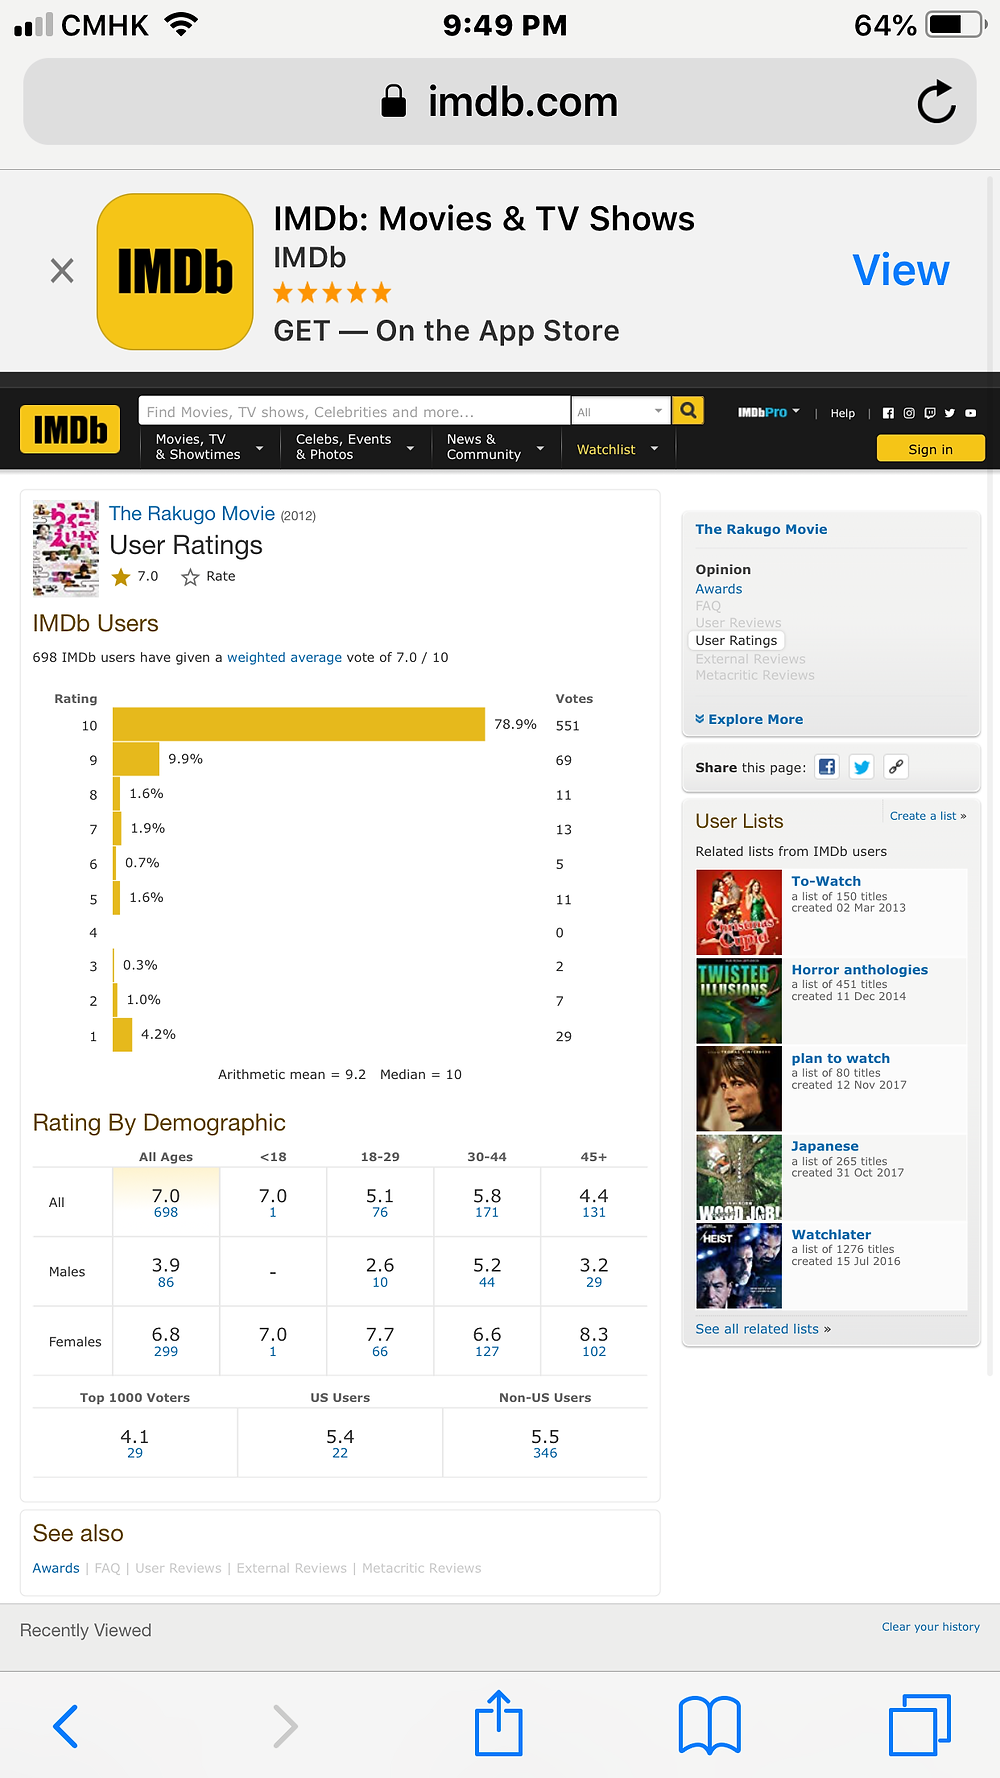 At 9:49 pm (China), Aug.15 2019. 698 IMDb users voted 7.0 / 10; Top 1000 users voted 4.1; US users voted 5.4; Non US users voted 5.5 (?).